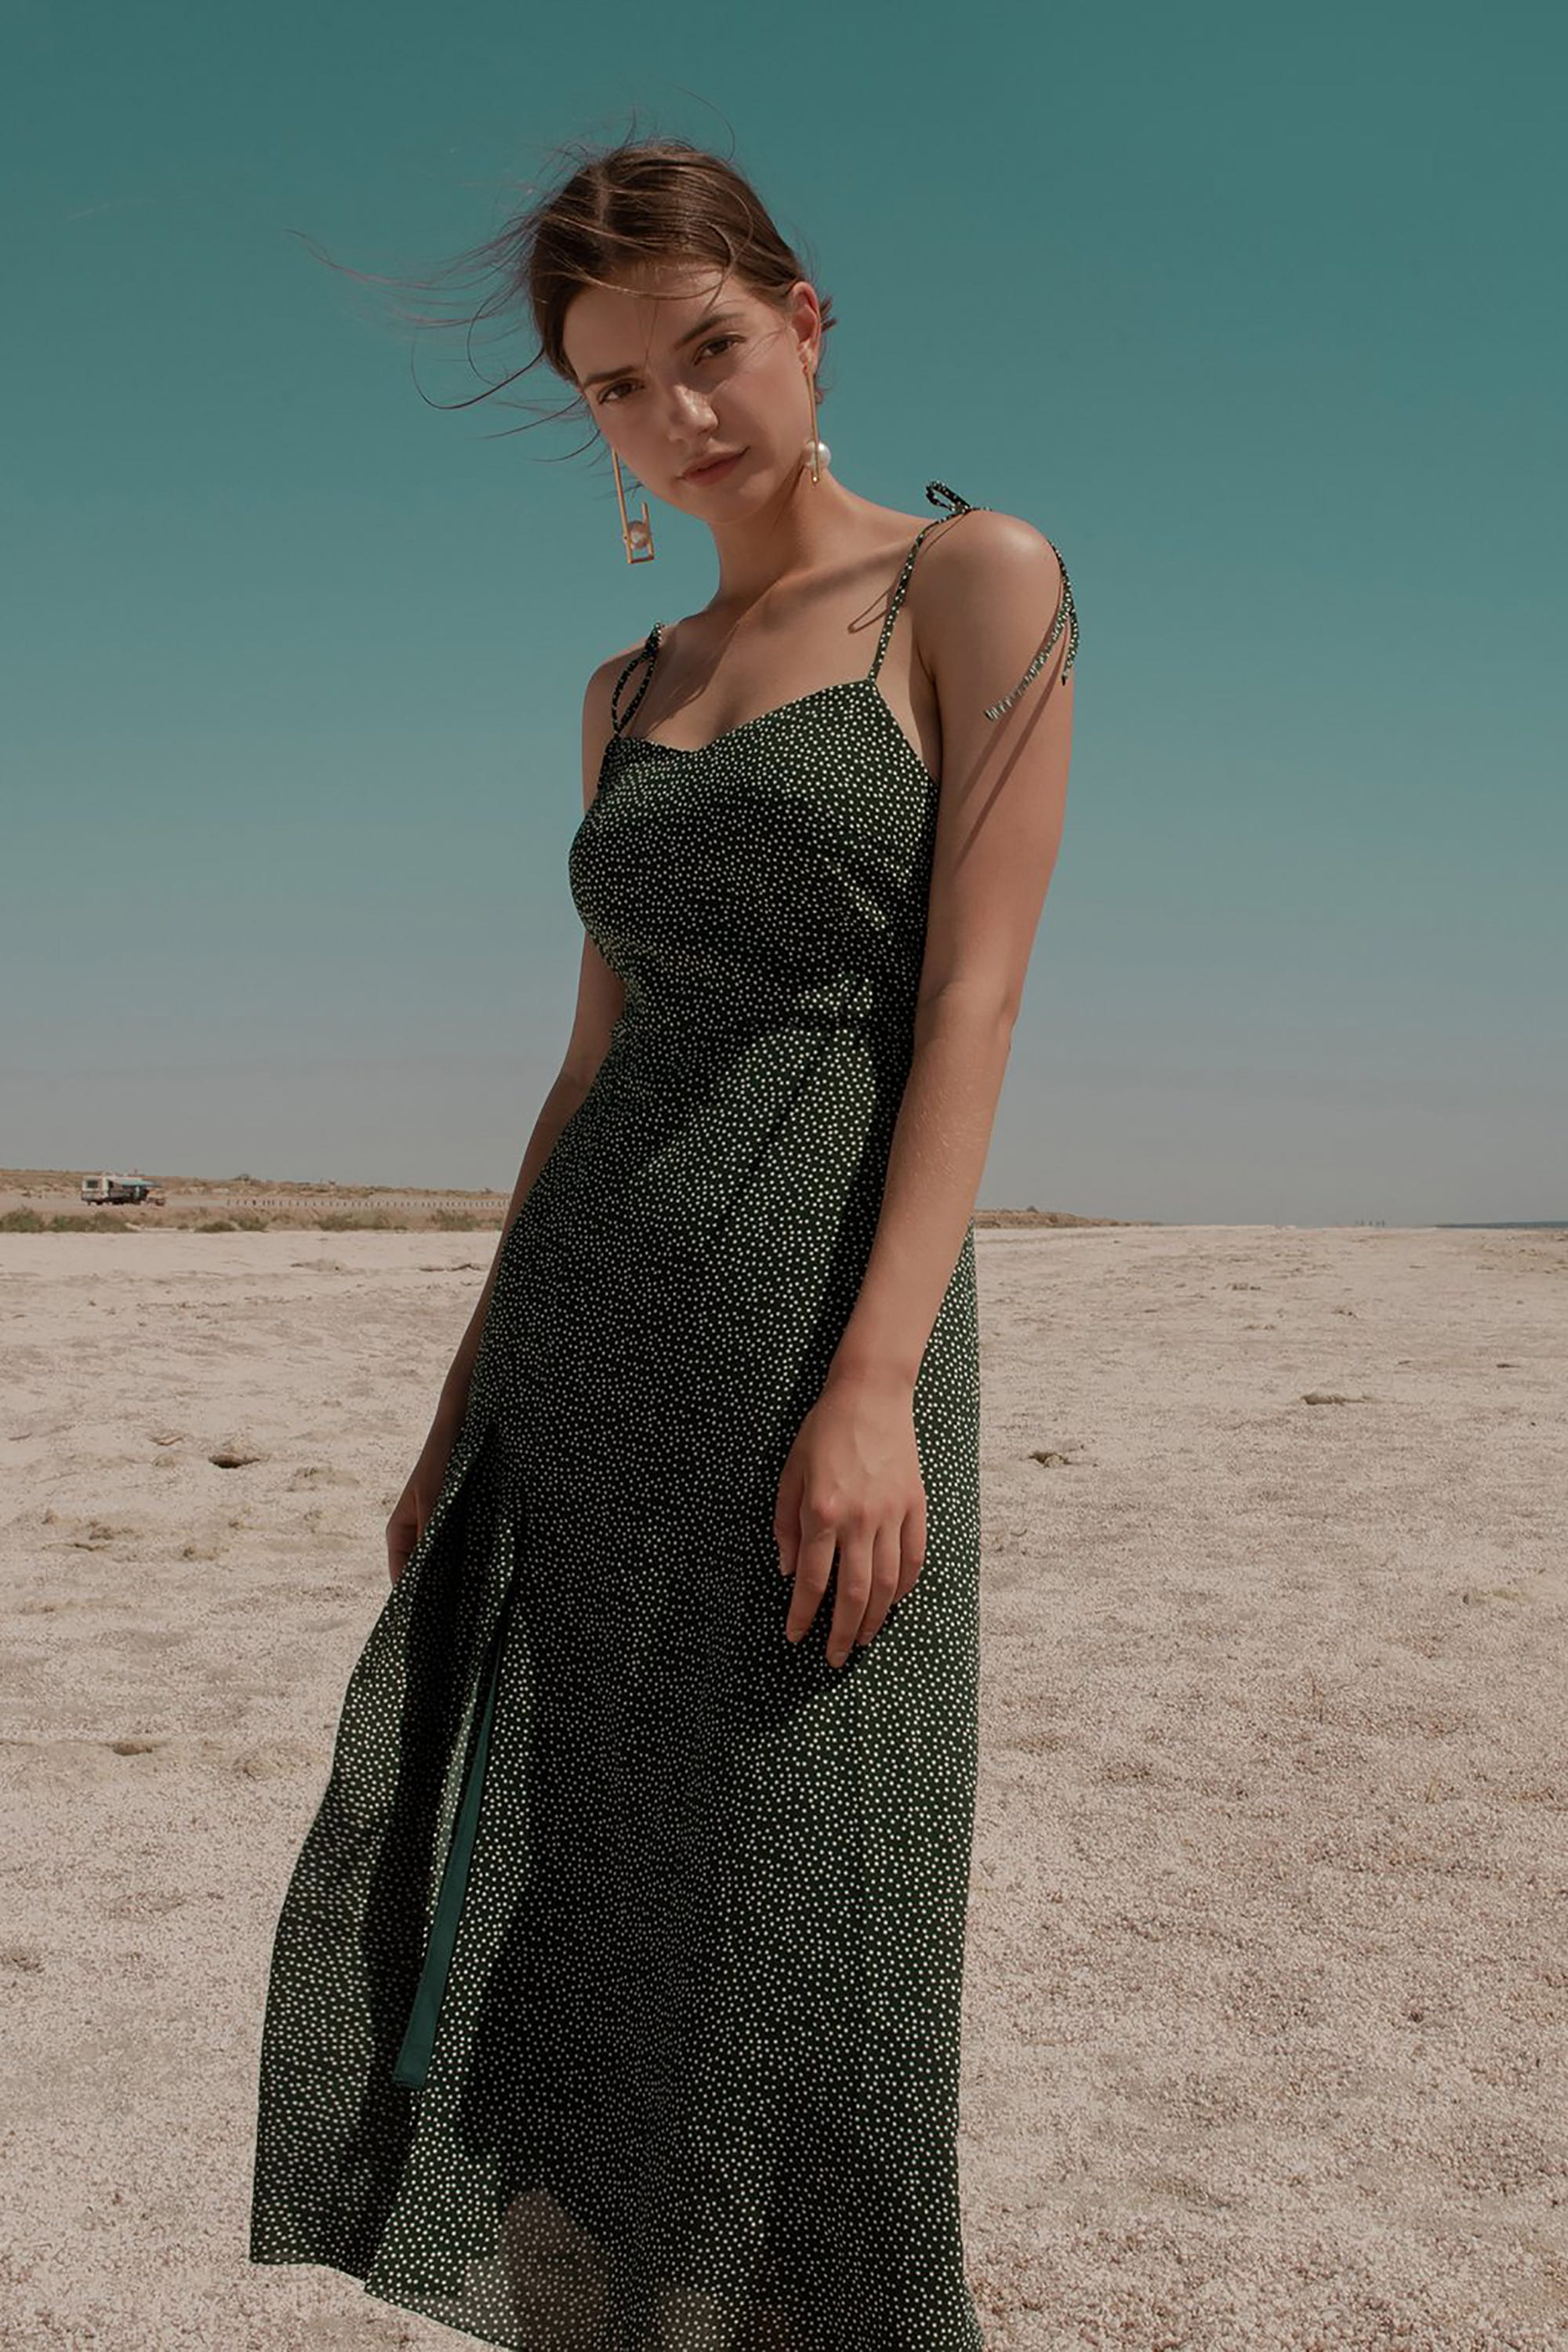 A New Crop Of Online Boutiques Has Us Excited For Summer Dressing